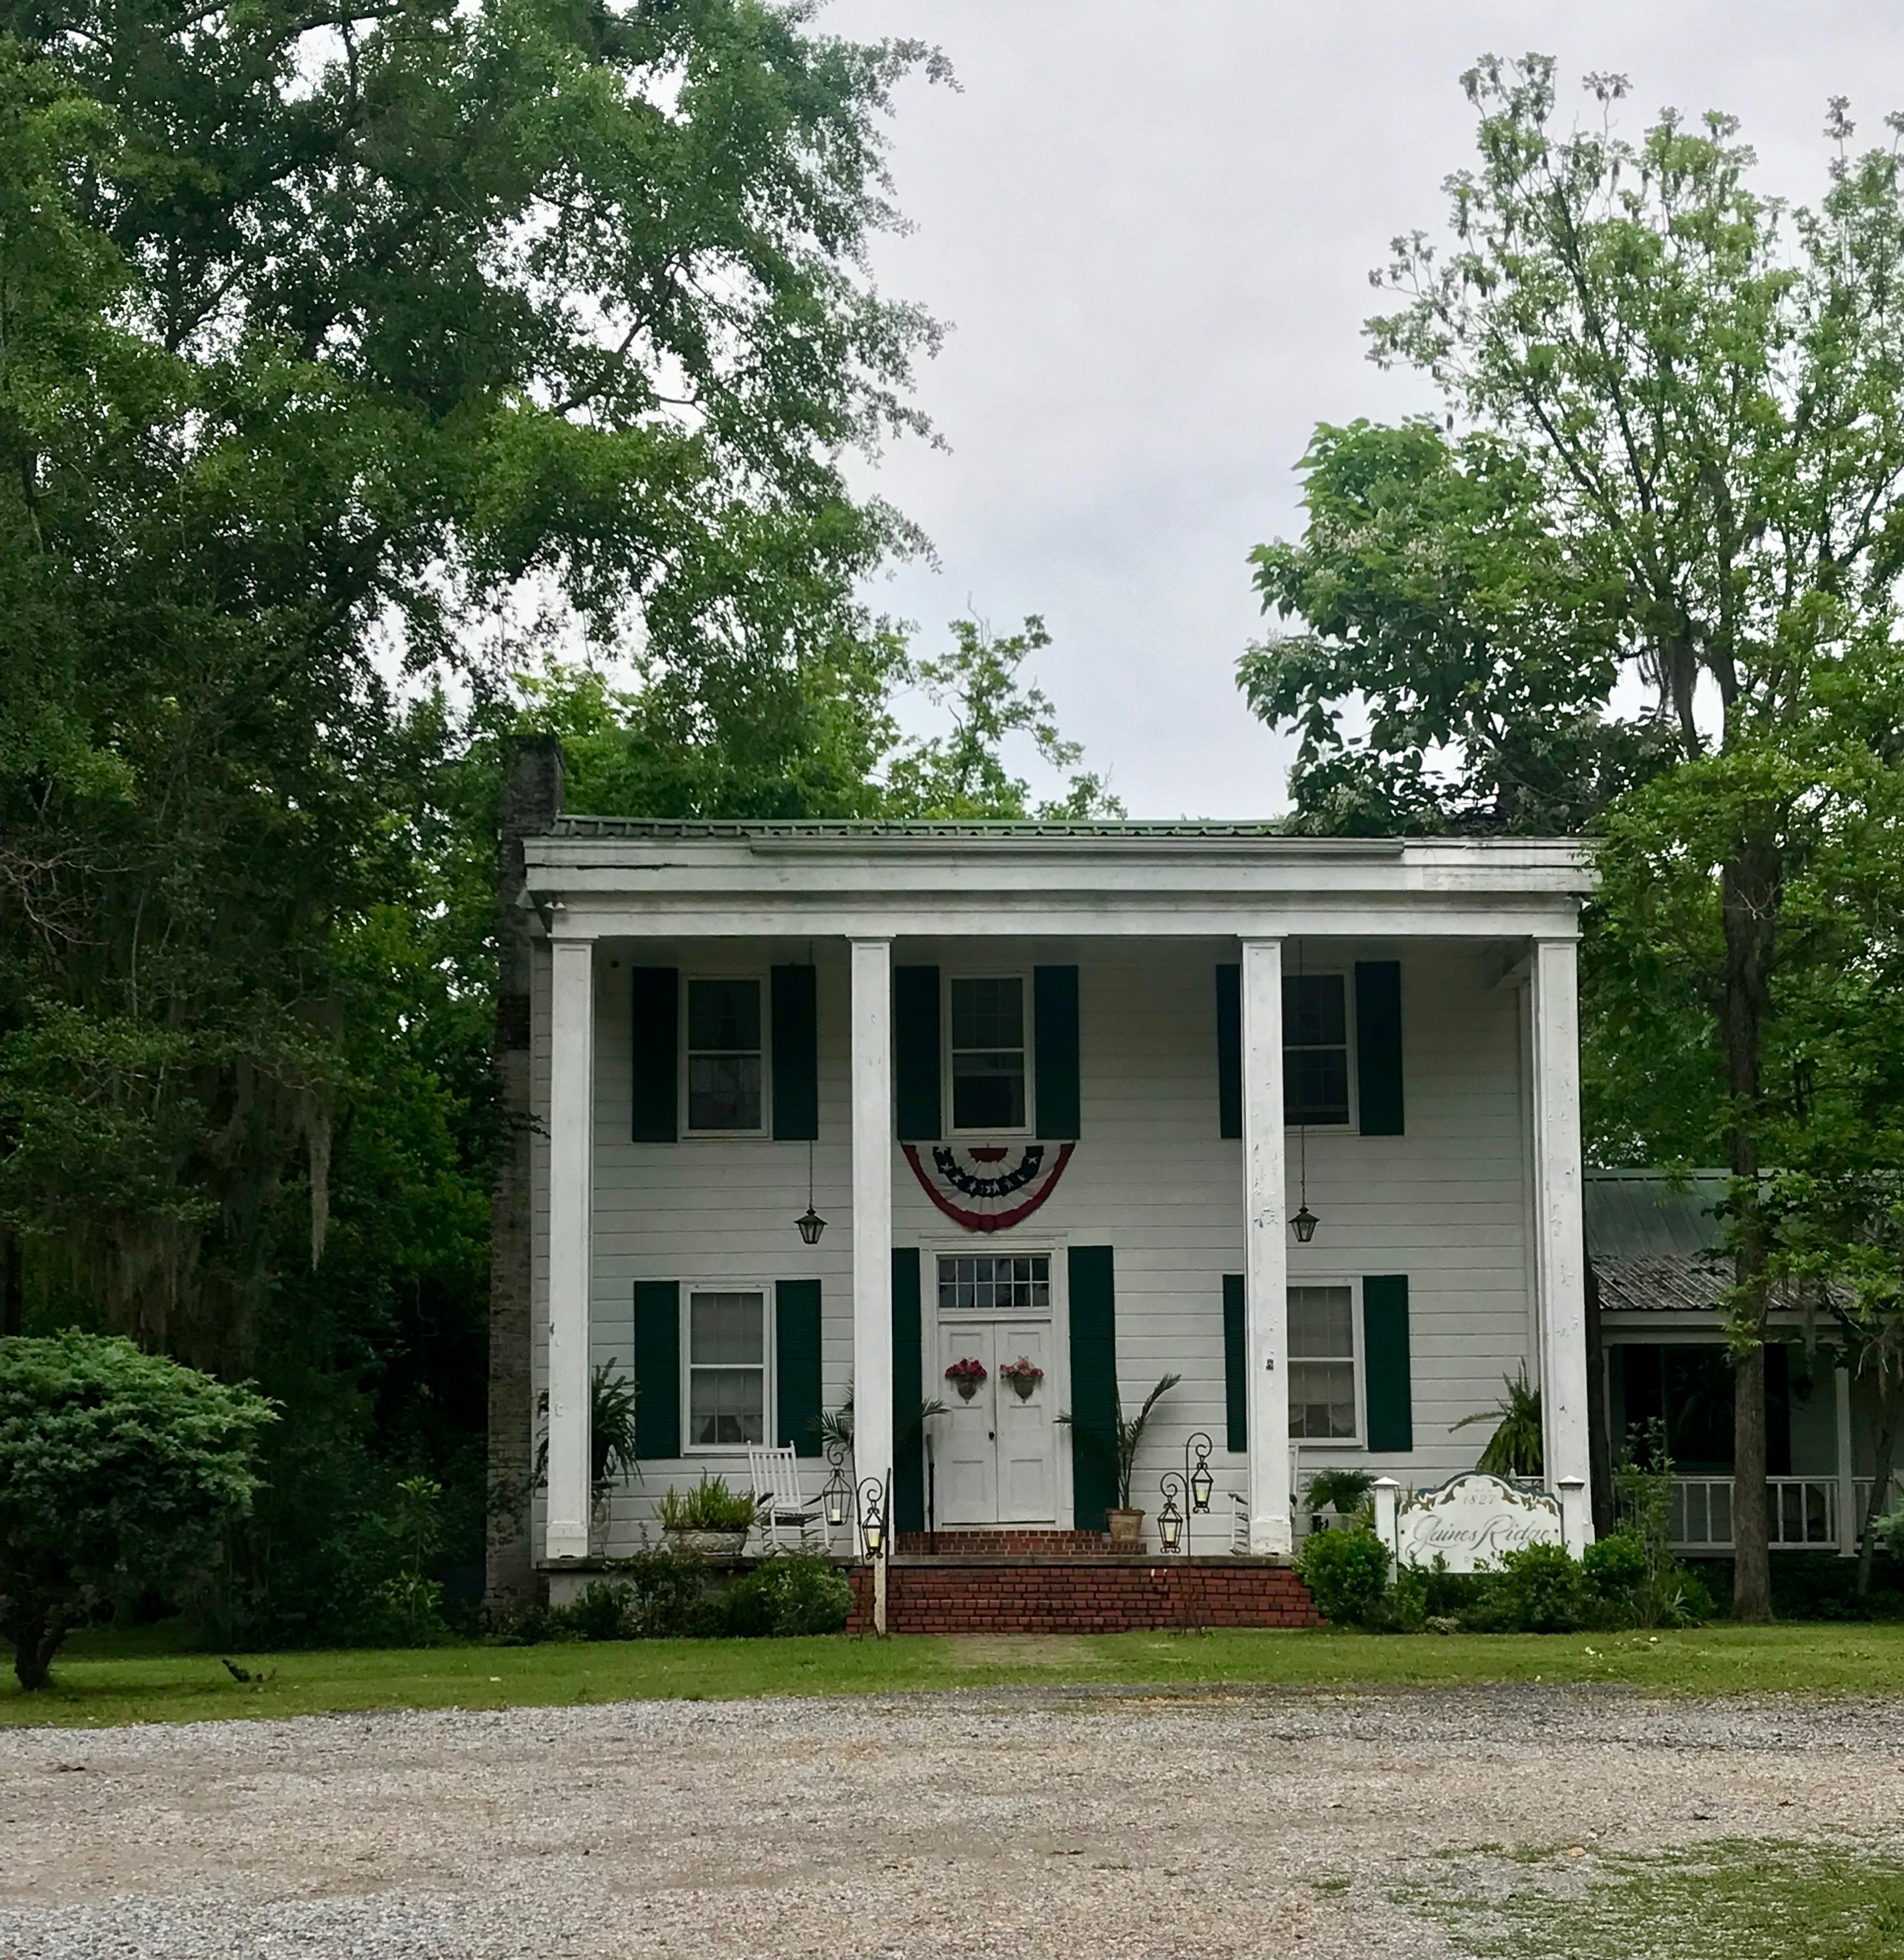 Betty Kennedy's home of Gaines Ridge